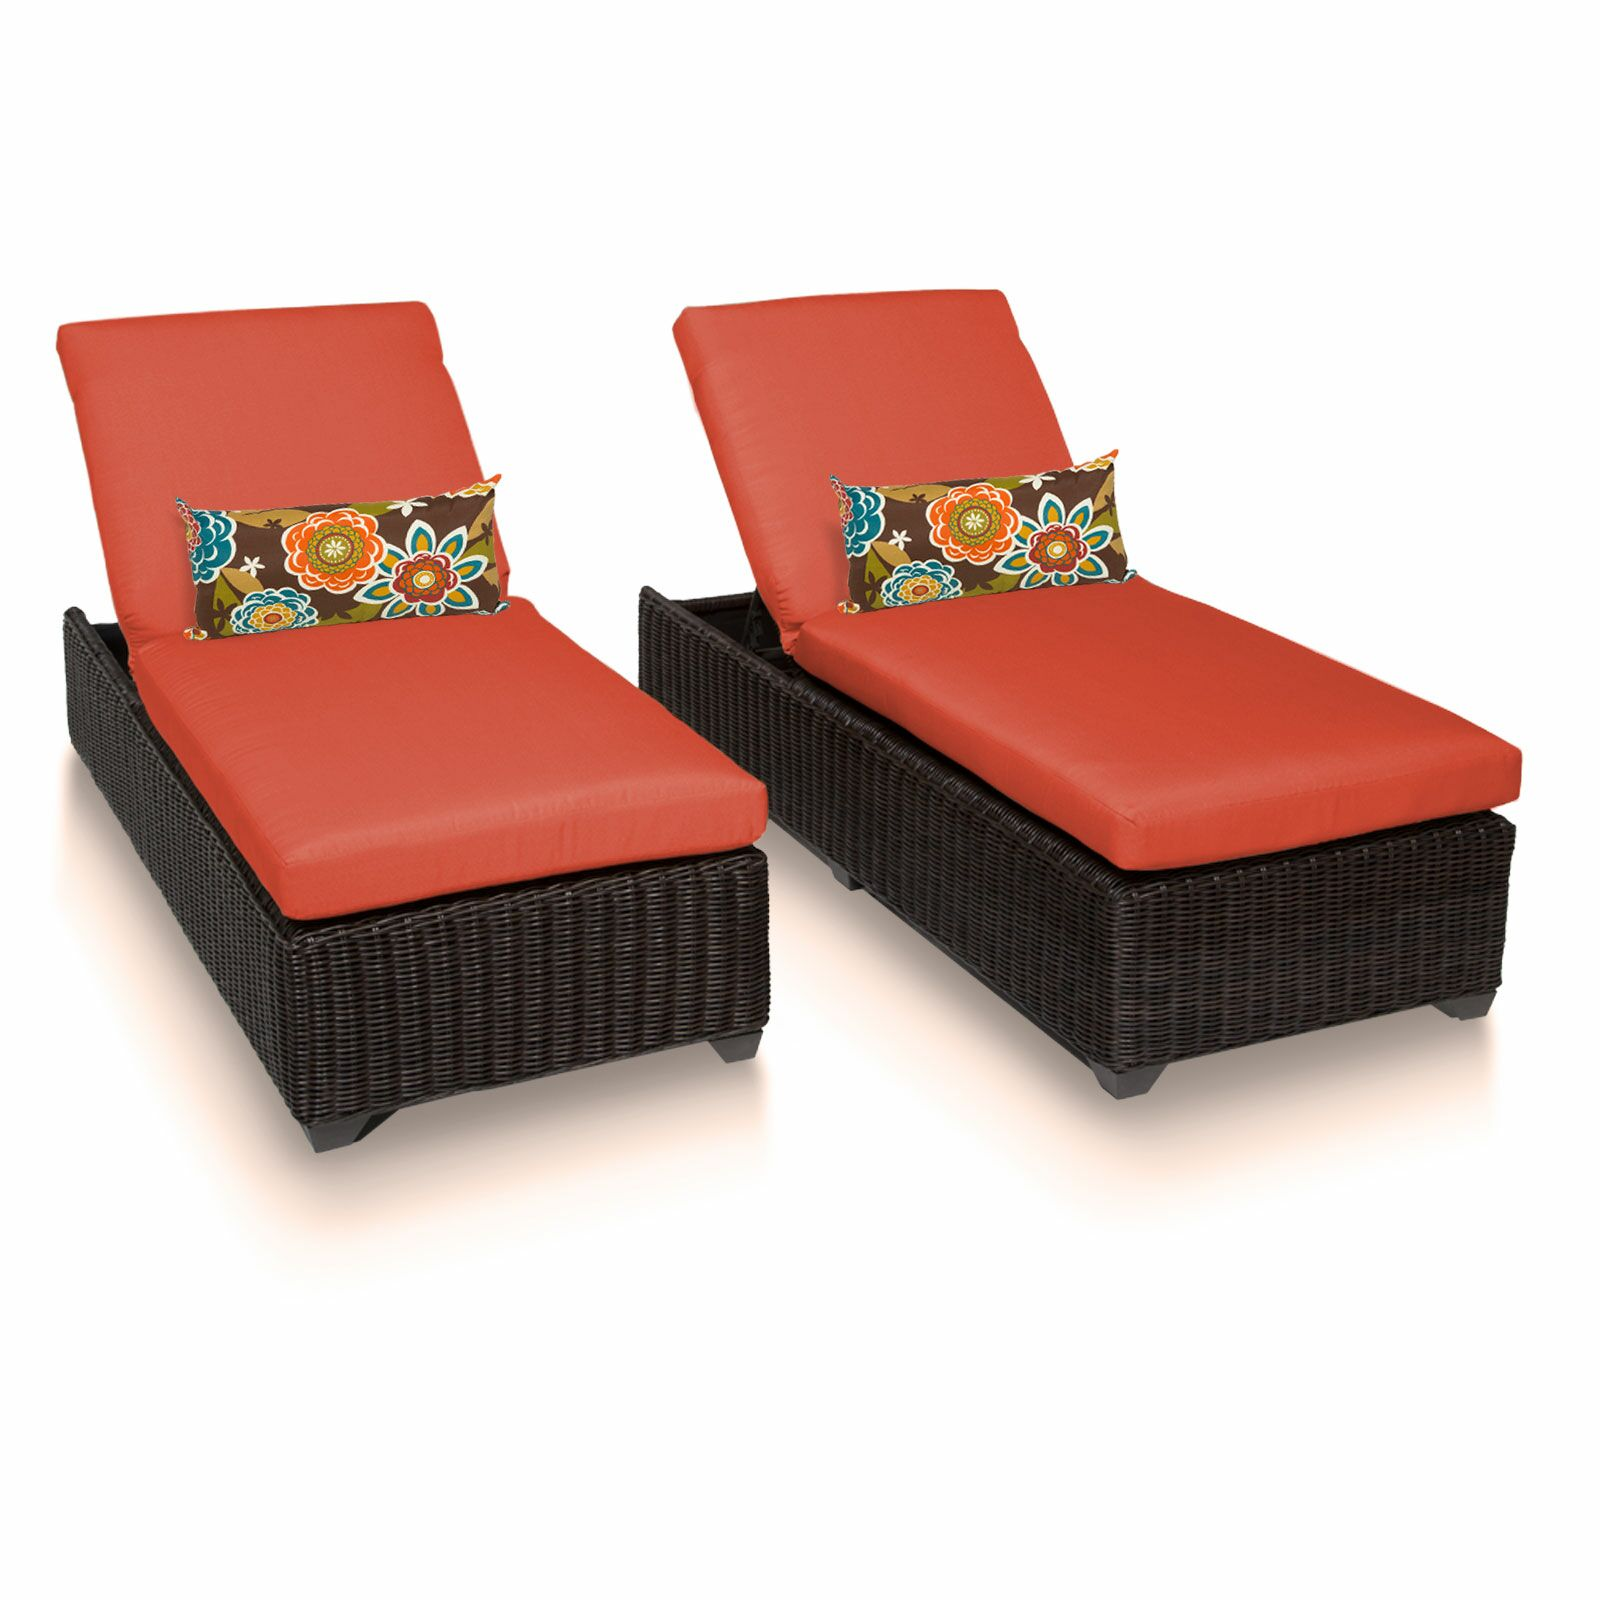 Eldredge Chaise Lounge with Cushion Color: Tangerine